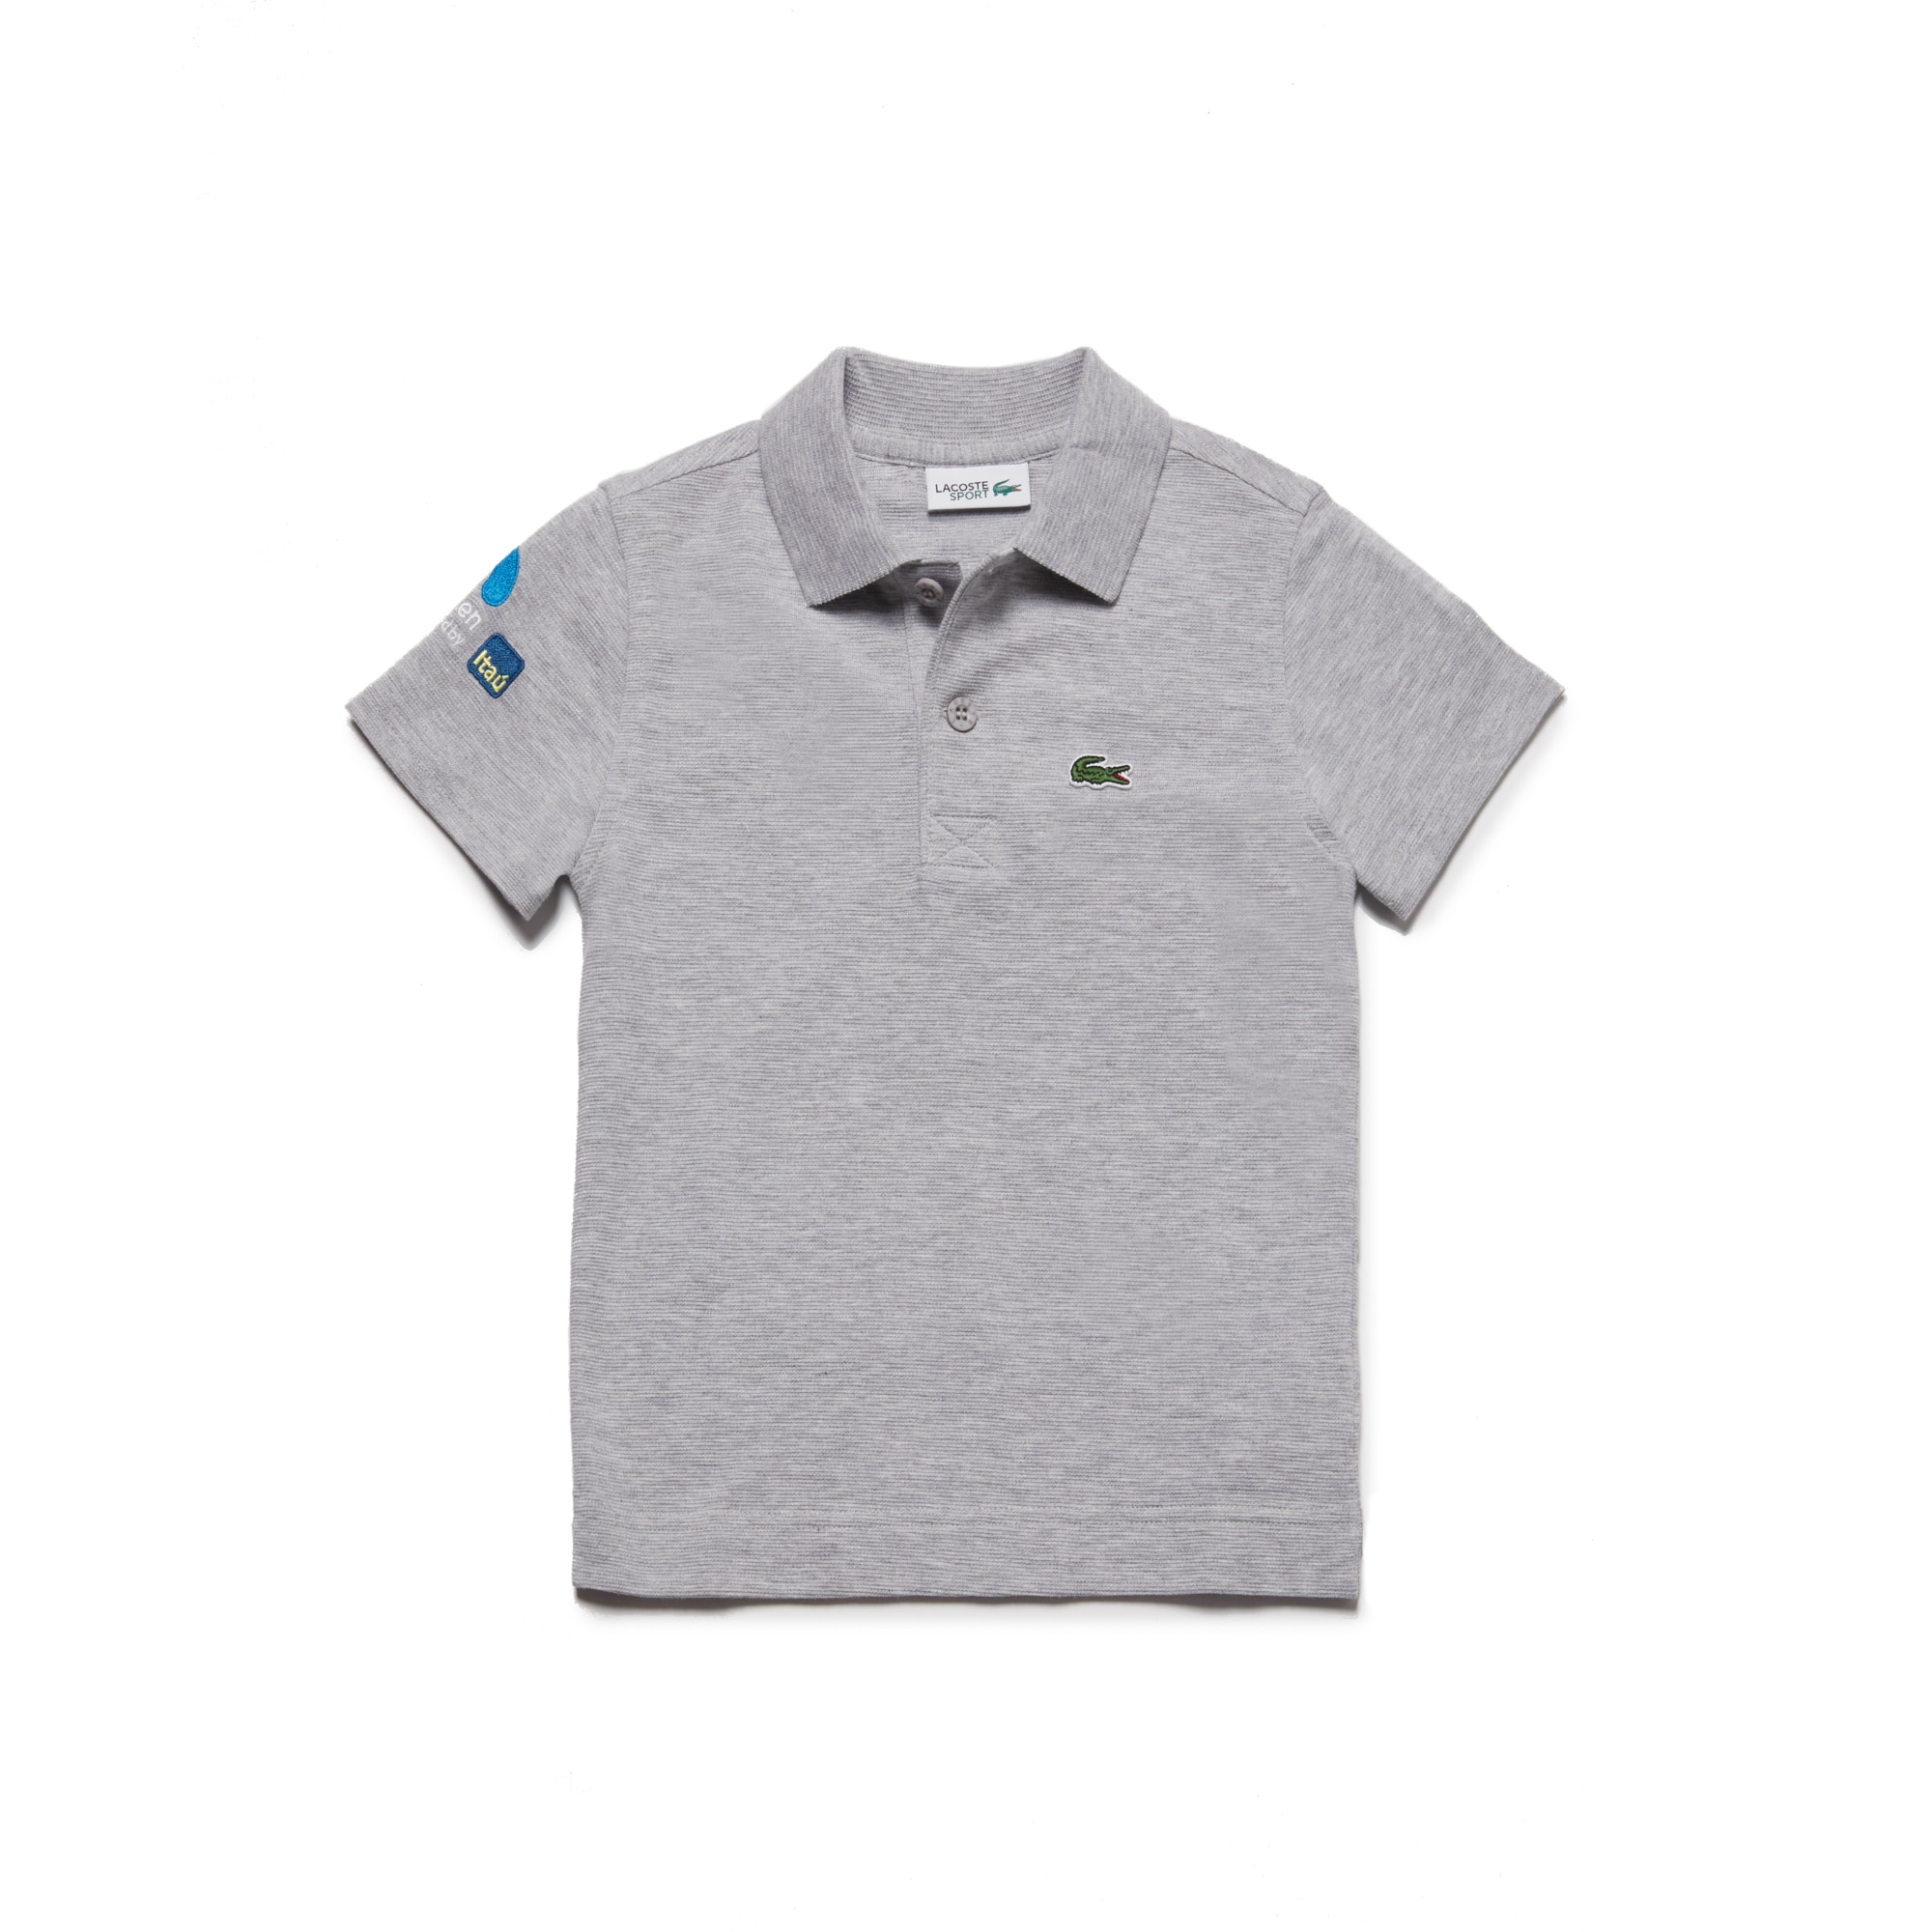 Boys' SPORT Miami Open Ultra-Light Cotton Tennis Polo